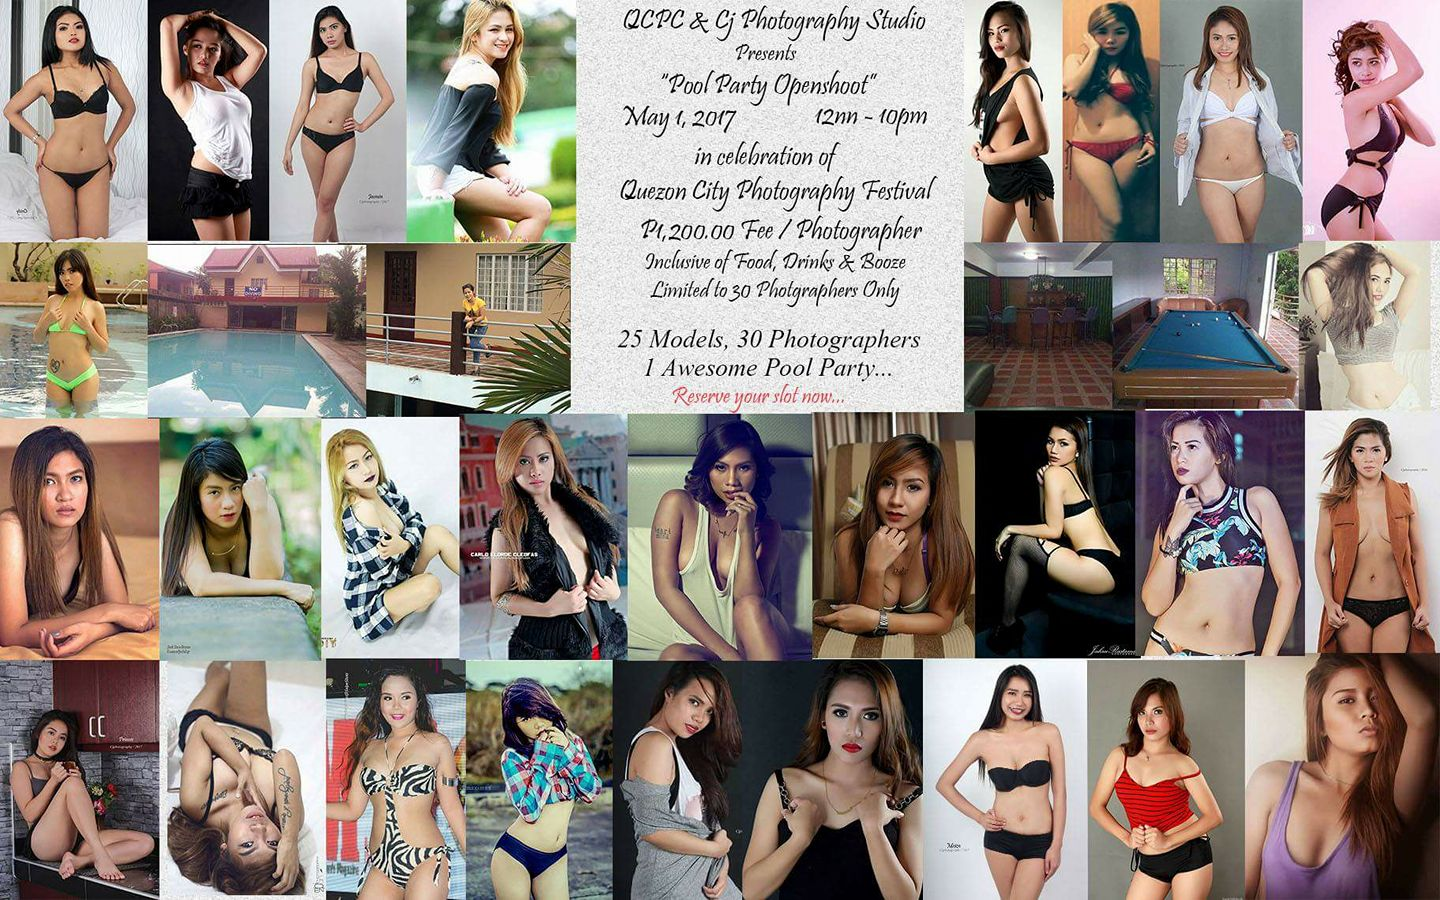 Angel Columna‎Quezon City Photo Club 9 hrs · PTPA Inviting all Photographers, Amateur,Professional and Hobbyist. Come and join us on May 1st,Labor Day for an Awesome Openshoot with our Gorgeous Sexy Models, This is in celebration of Quezon City Photography Festival. What : Pool Party Open Photoshoot When : May 1,2017 Time : 1:00 PM - 10:00 PM Fee: P1,200.00 / Photographer with Food, Drinks and Booze... Model Line up ( Kulang pa ng Konte) Nica Garrate CristineMhay Esniel Corpuz Kiara Gates Jai Ann Jabolin Allison Ignacio II Jess Tolentino Cabanilla Samantha Lanzanas BabyJoy Estabillo Bella Johnny Anne DEL Valle Thea Aetuah Alexis Mendez Lhetskie Requinta Aira Padua Vhie Villar Valles Princes Nuñez Acampado Dhiane Alyssa Louise Gonza kristy Jazzi John Carlo Francisco Angel Nuarin Lahat po sila confirm to join the event, yung iba lang ayaw magpa Tag for some reason... Poster will be updated every now and then, kase nga po may kulang pa na model. We require 50% DP to reserve your Slot, this is in cooperation with QCPC, all DP's and Payments will be course thru Cj Photography Studio. Contact us at 09357075212 or PM us for more information. Check us out, @ilovecjphotography See you at the Pool Party... #QCPhotographyFestival2017 — at CJ Photography Studio.